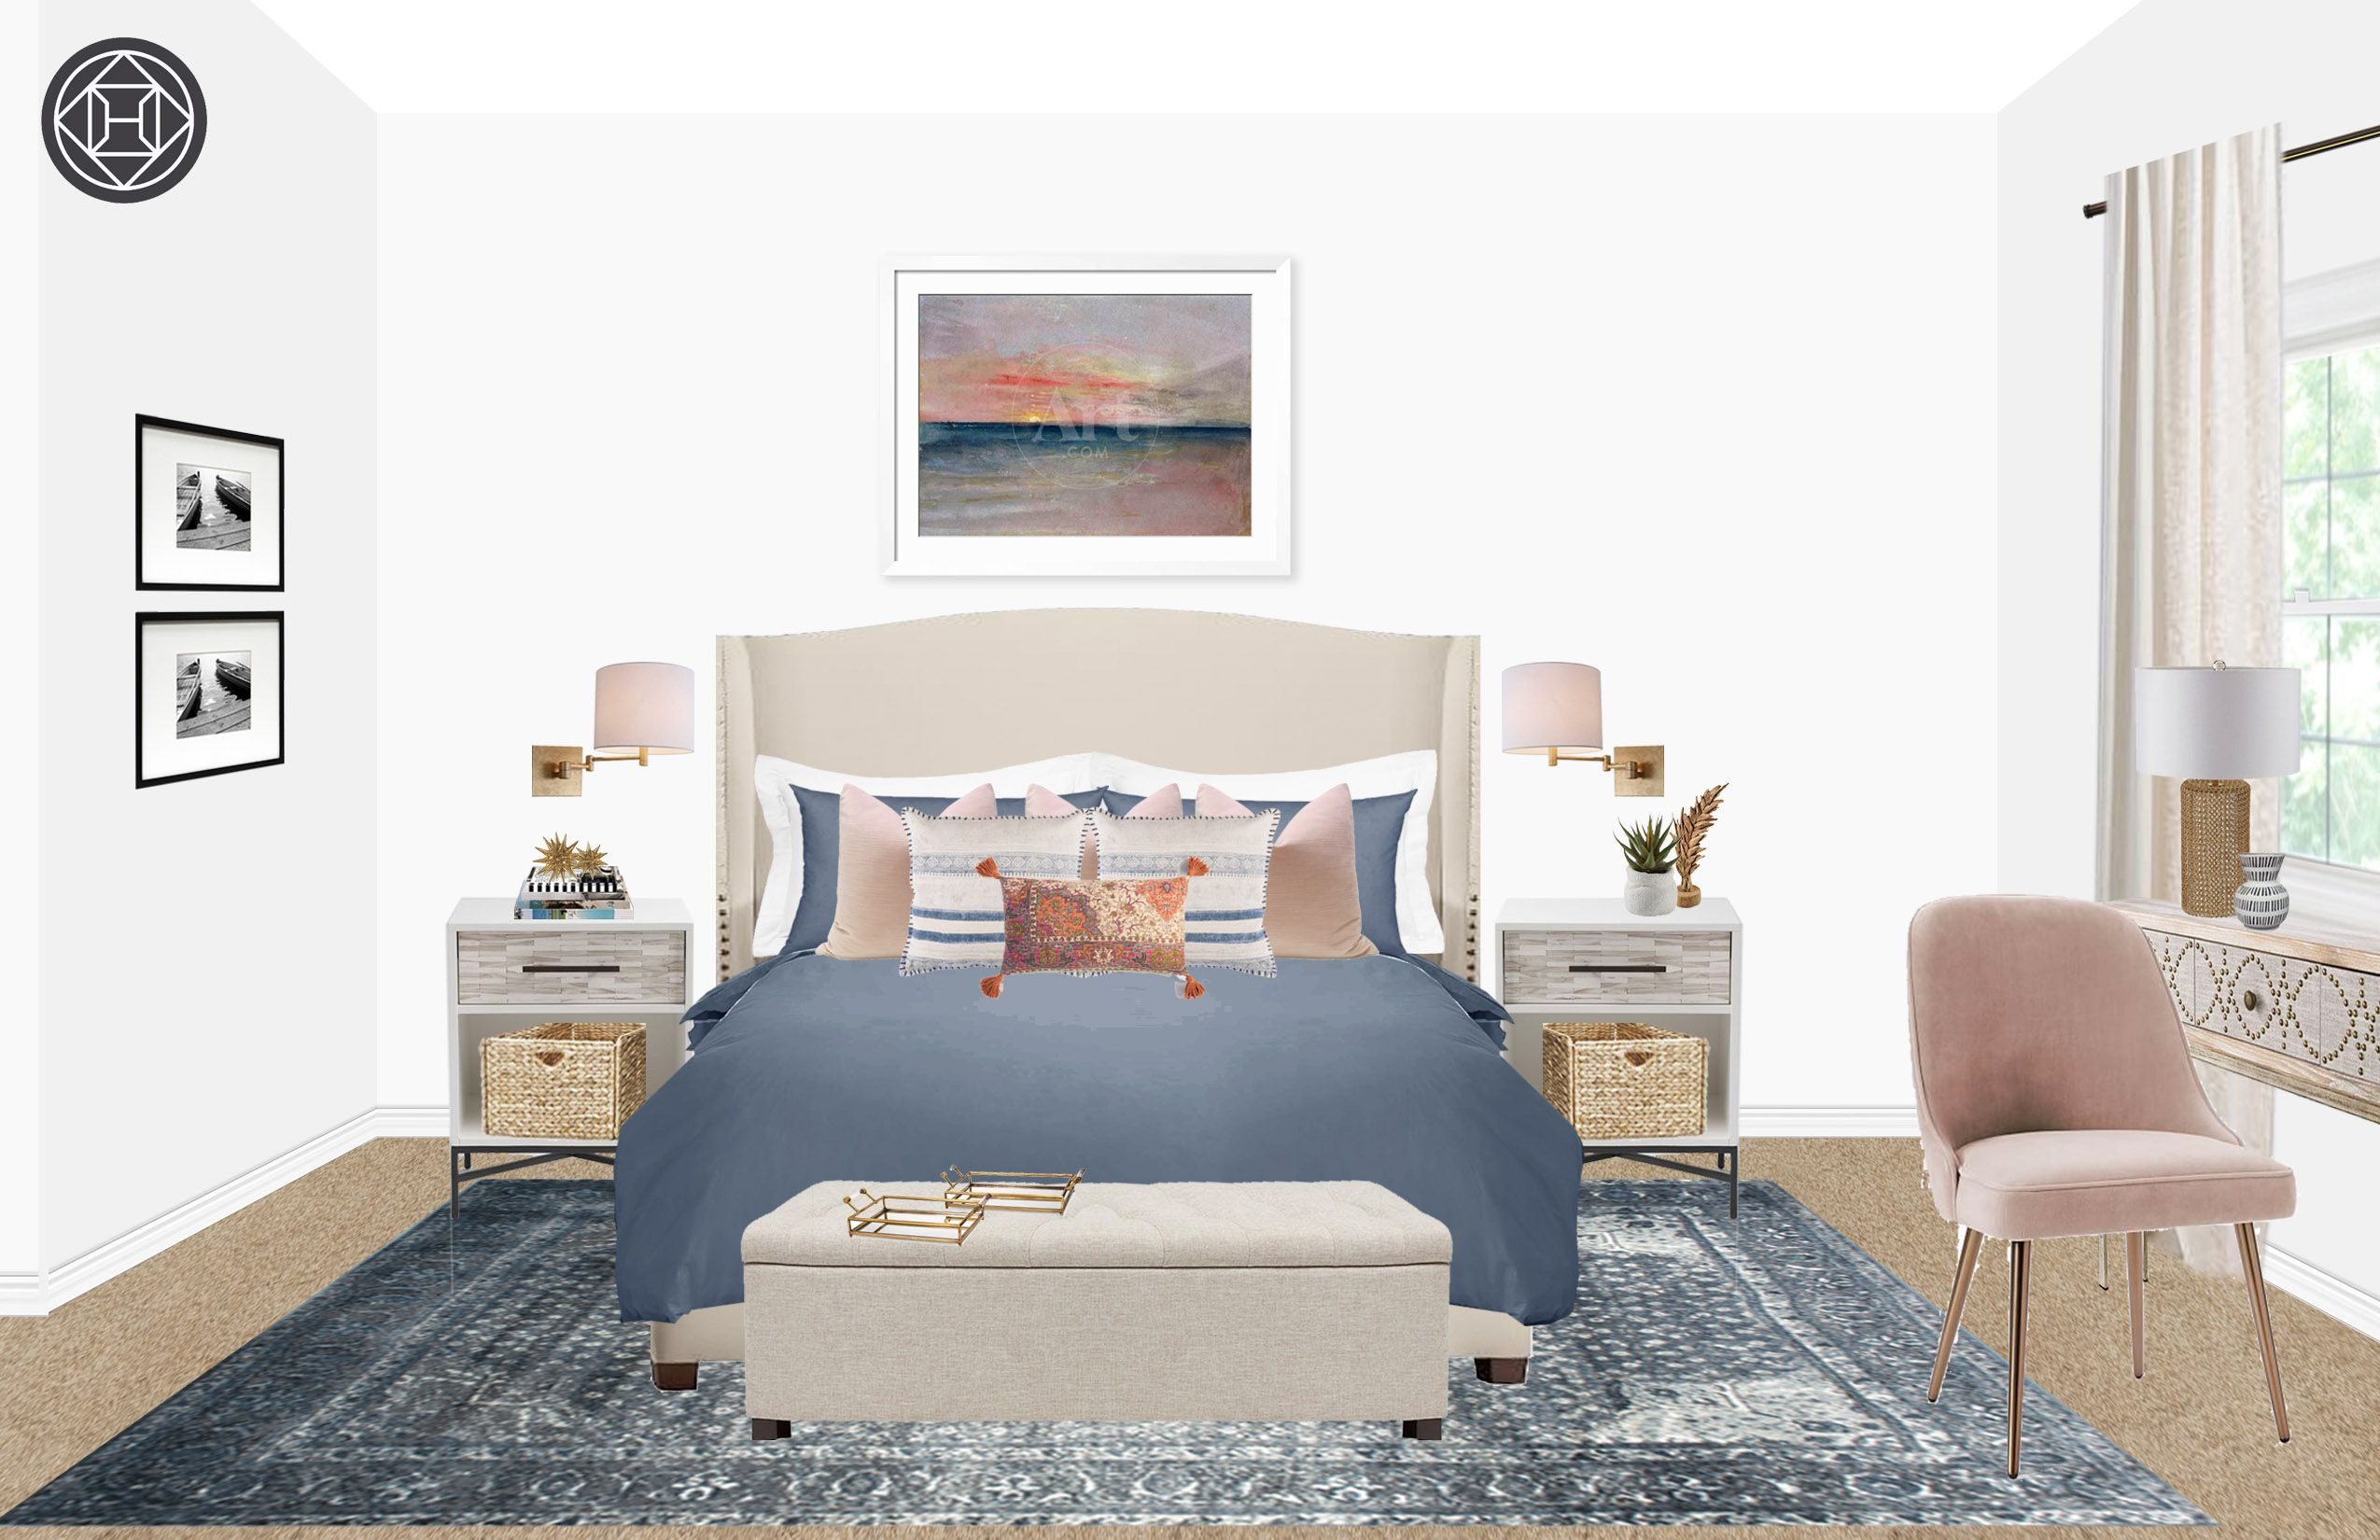 Contemporary Classic Coastal Transitional Bedroom Design By Havenly Interior Designer Kassy Transitional Bedroom Design Furniture Furniture Design